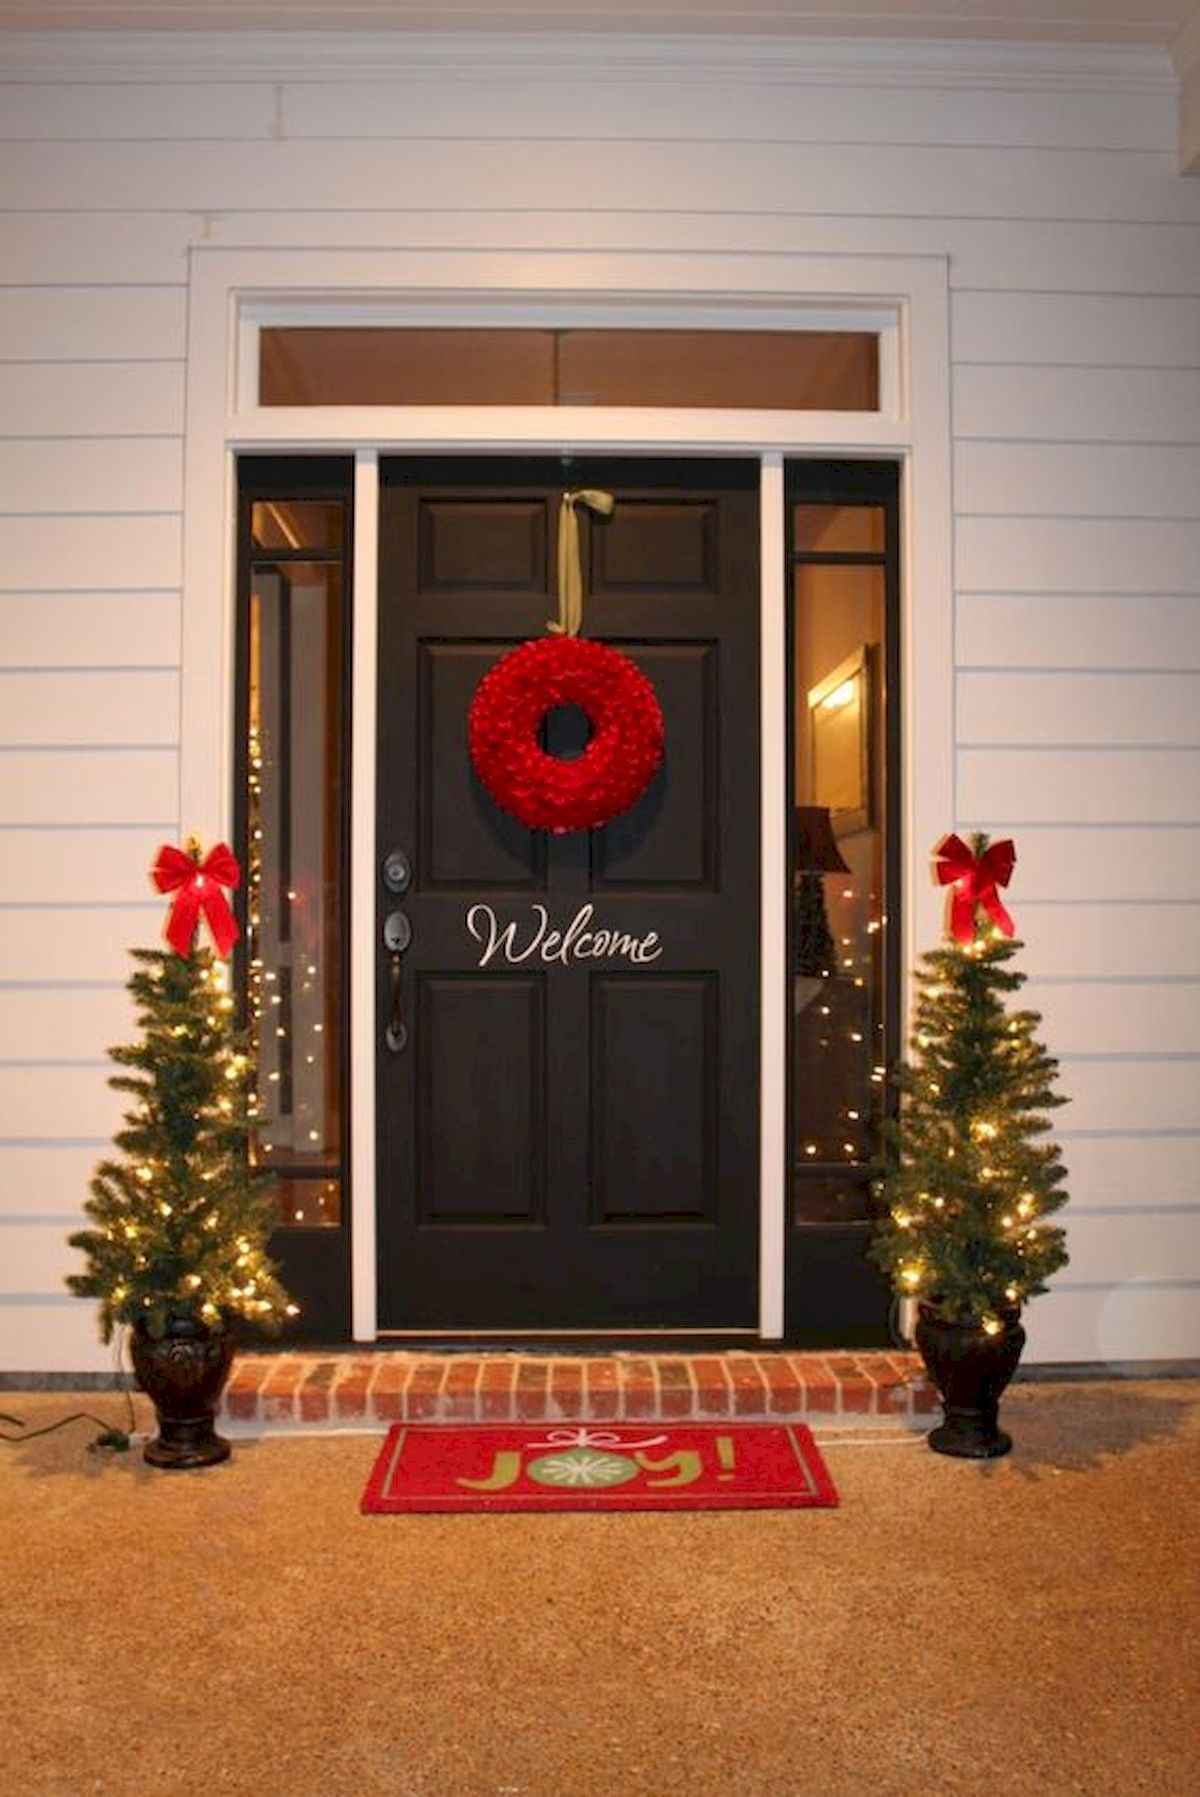 50 stunning front porch christmas lights decorations ideas (23)